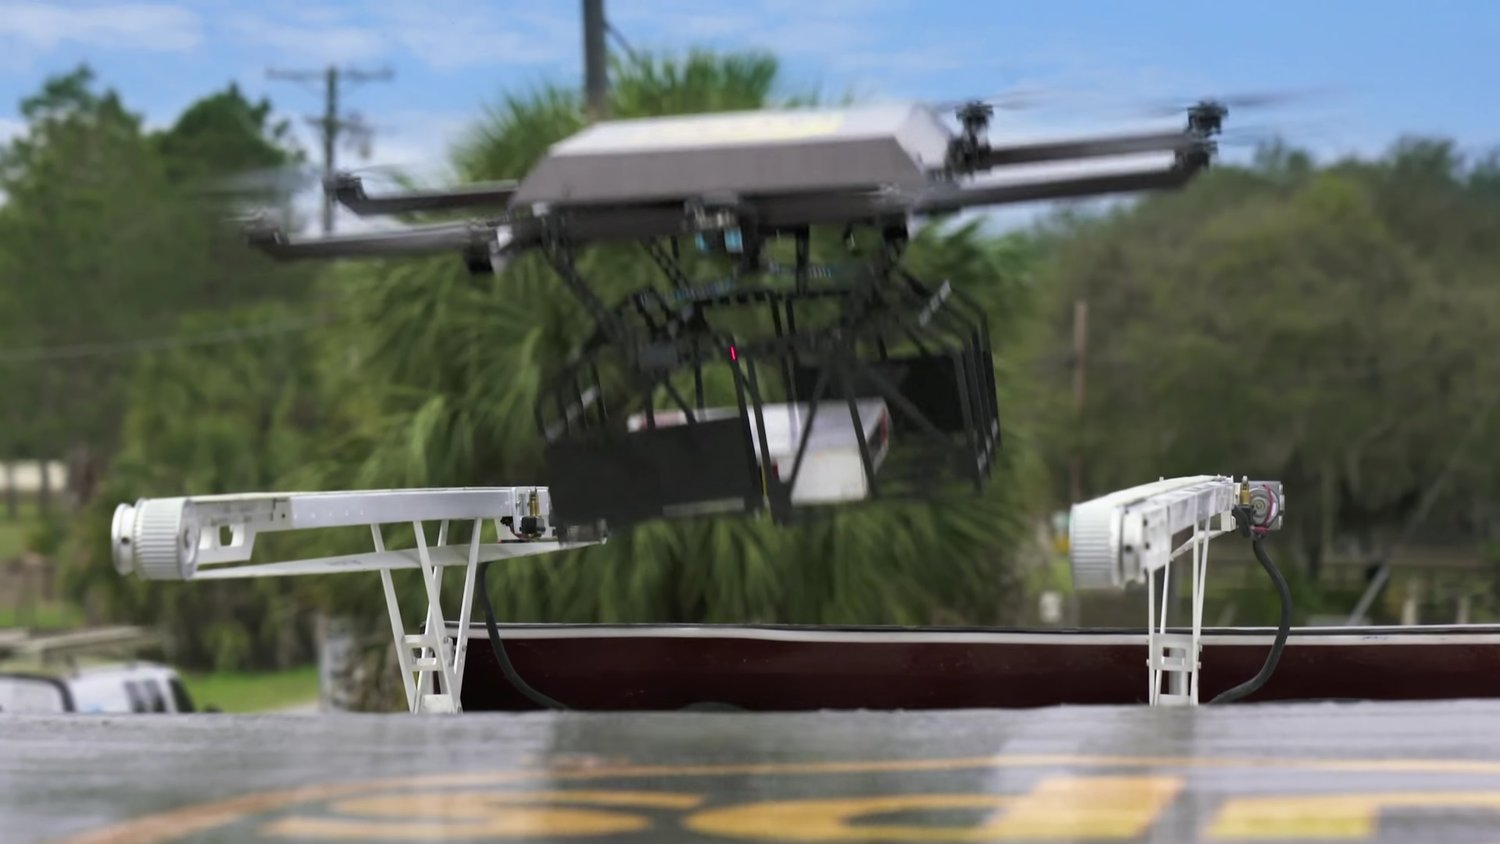 UPS Gives an Example of What Actual Drone Delivery Will Look Like